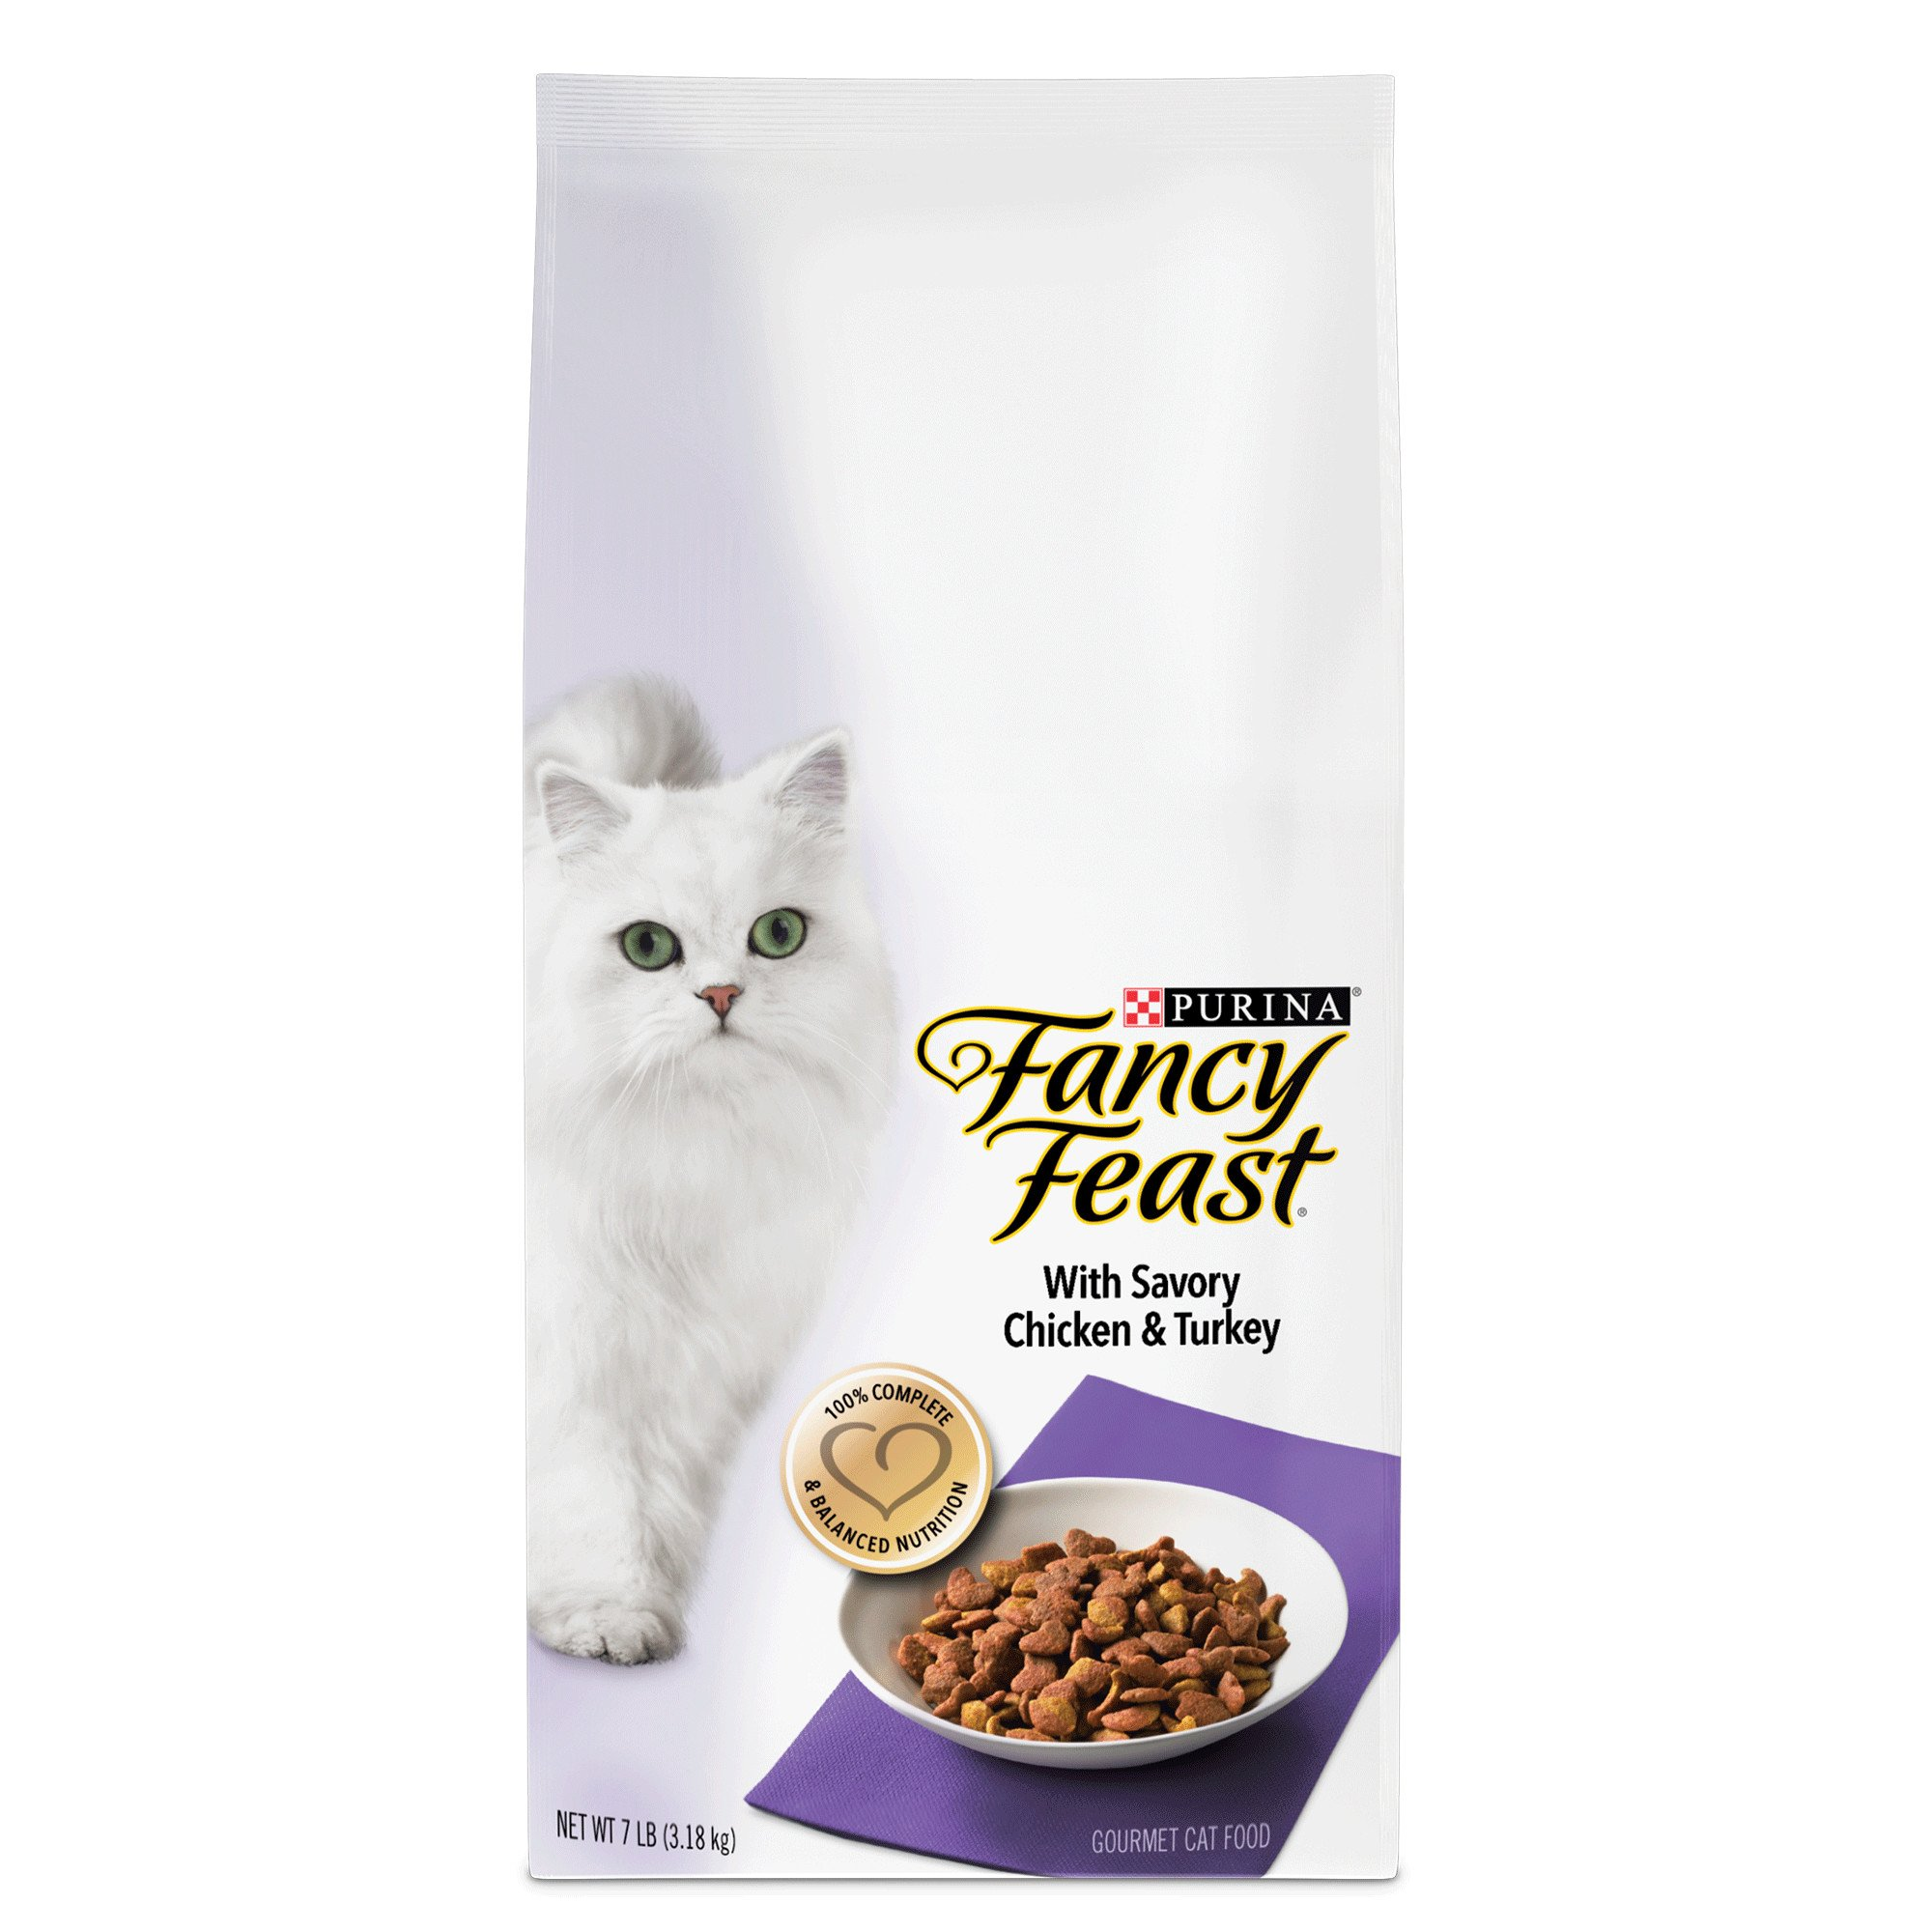 New Pet Food Delivery